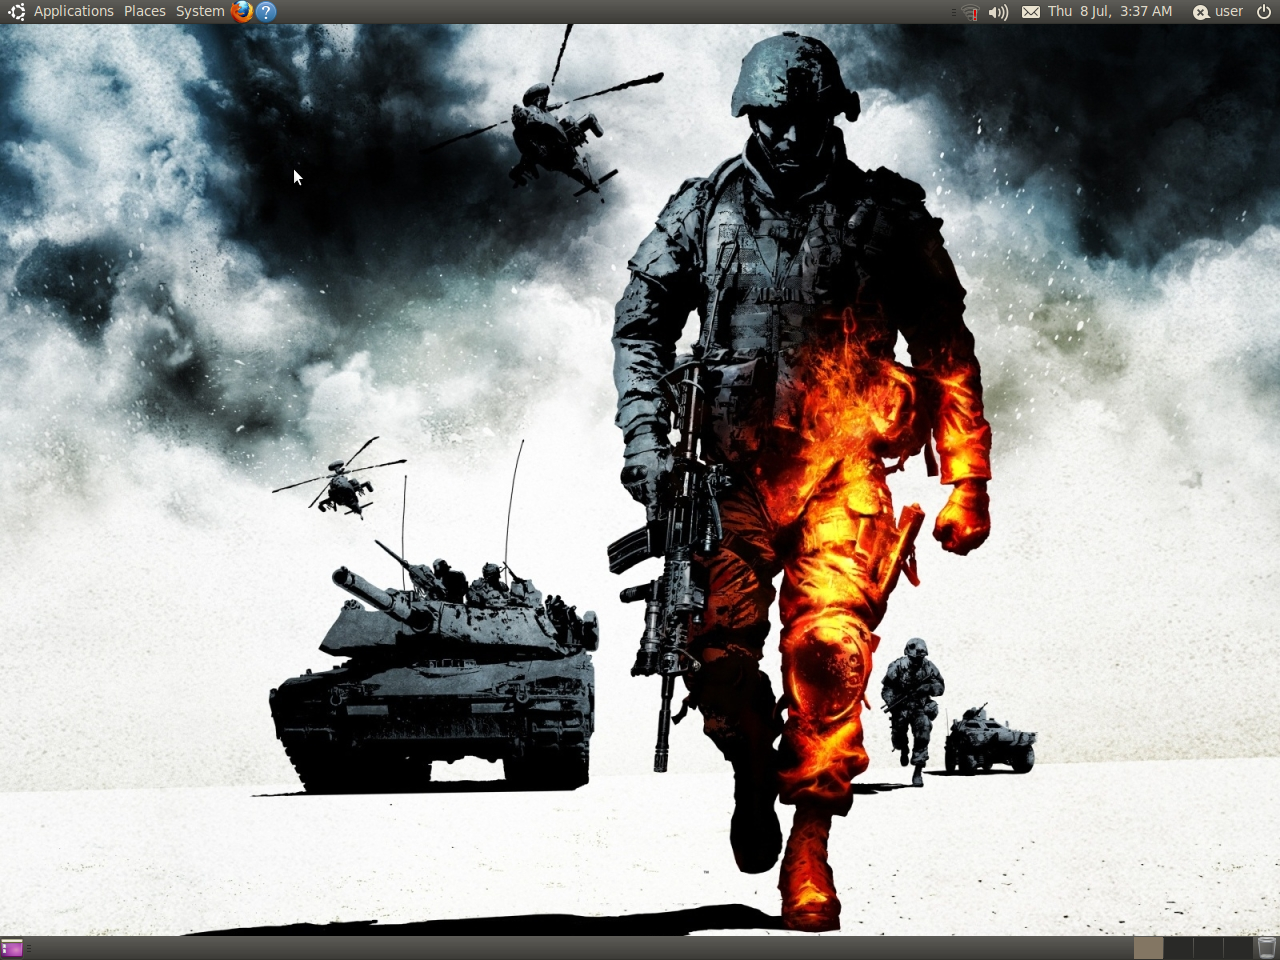 Hd wallpaper indian army - Wallpapers For Indian Army Hd Wallpaper